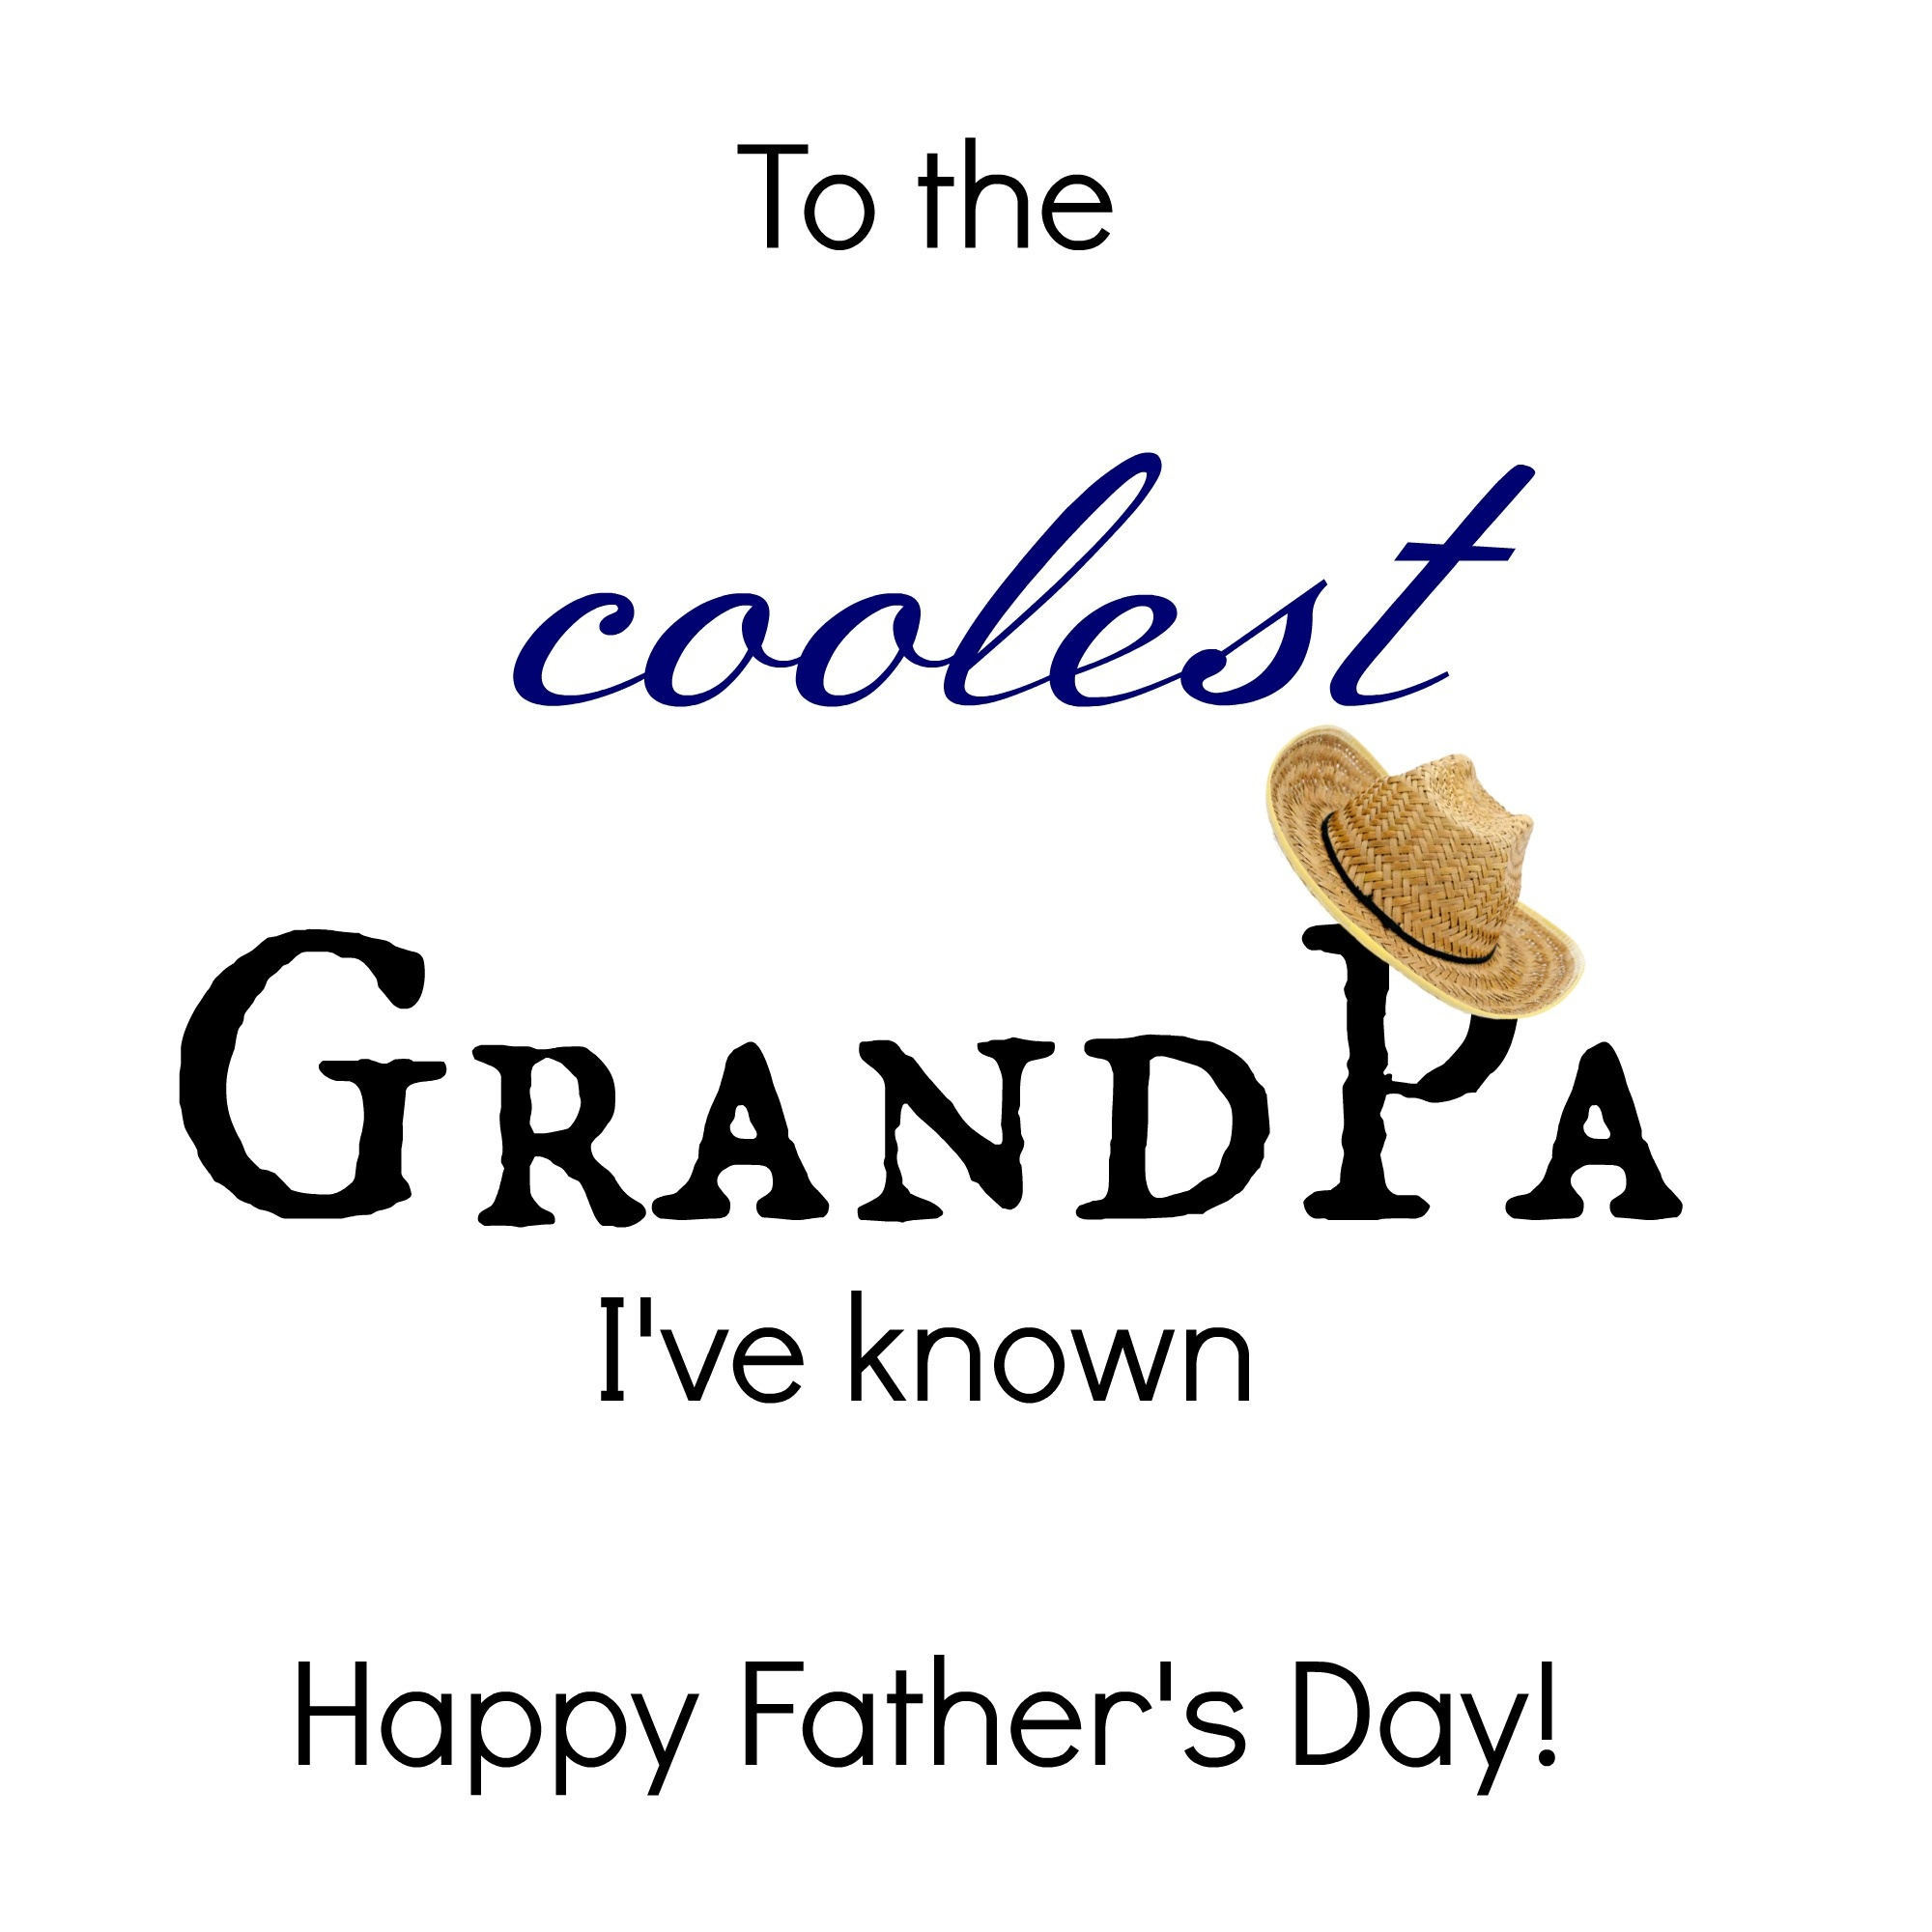 24 Free Printable Father's Day Cards | Kittybabylove - Free Printable Fathers Day Cards